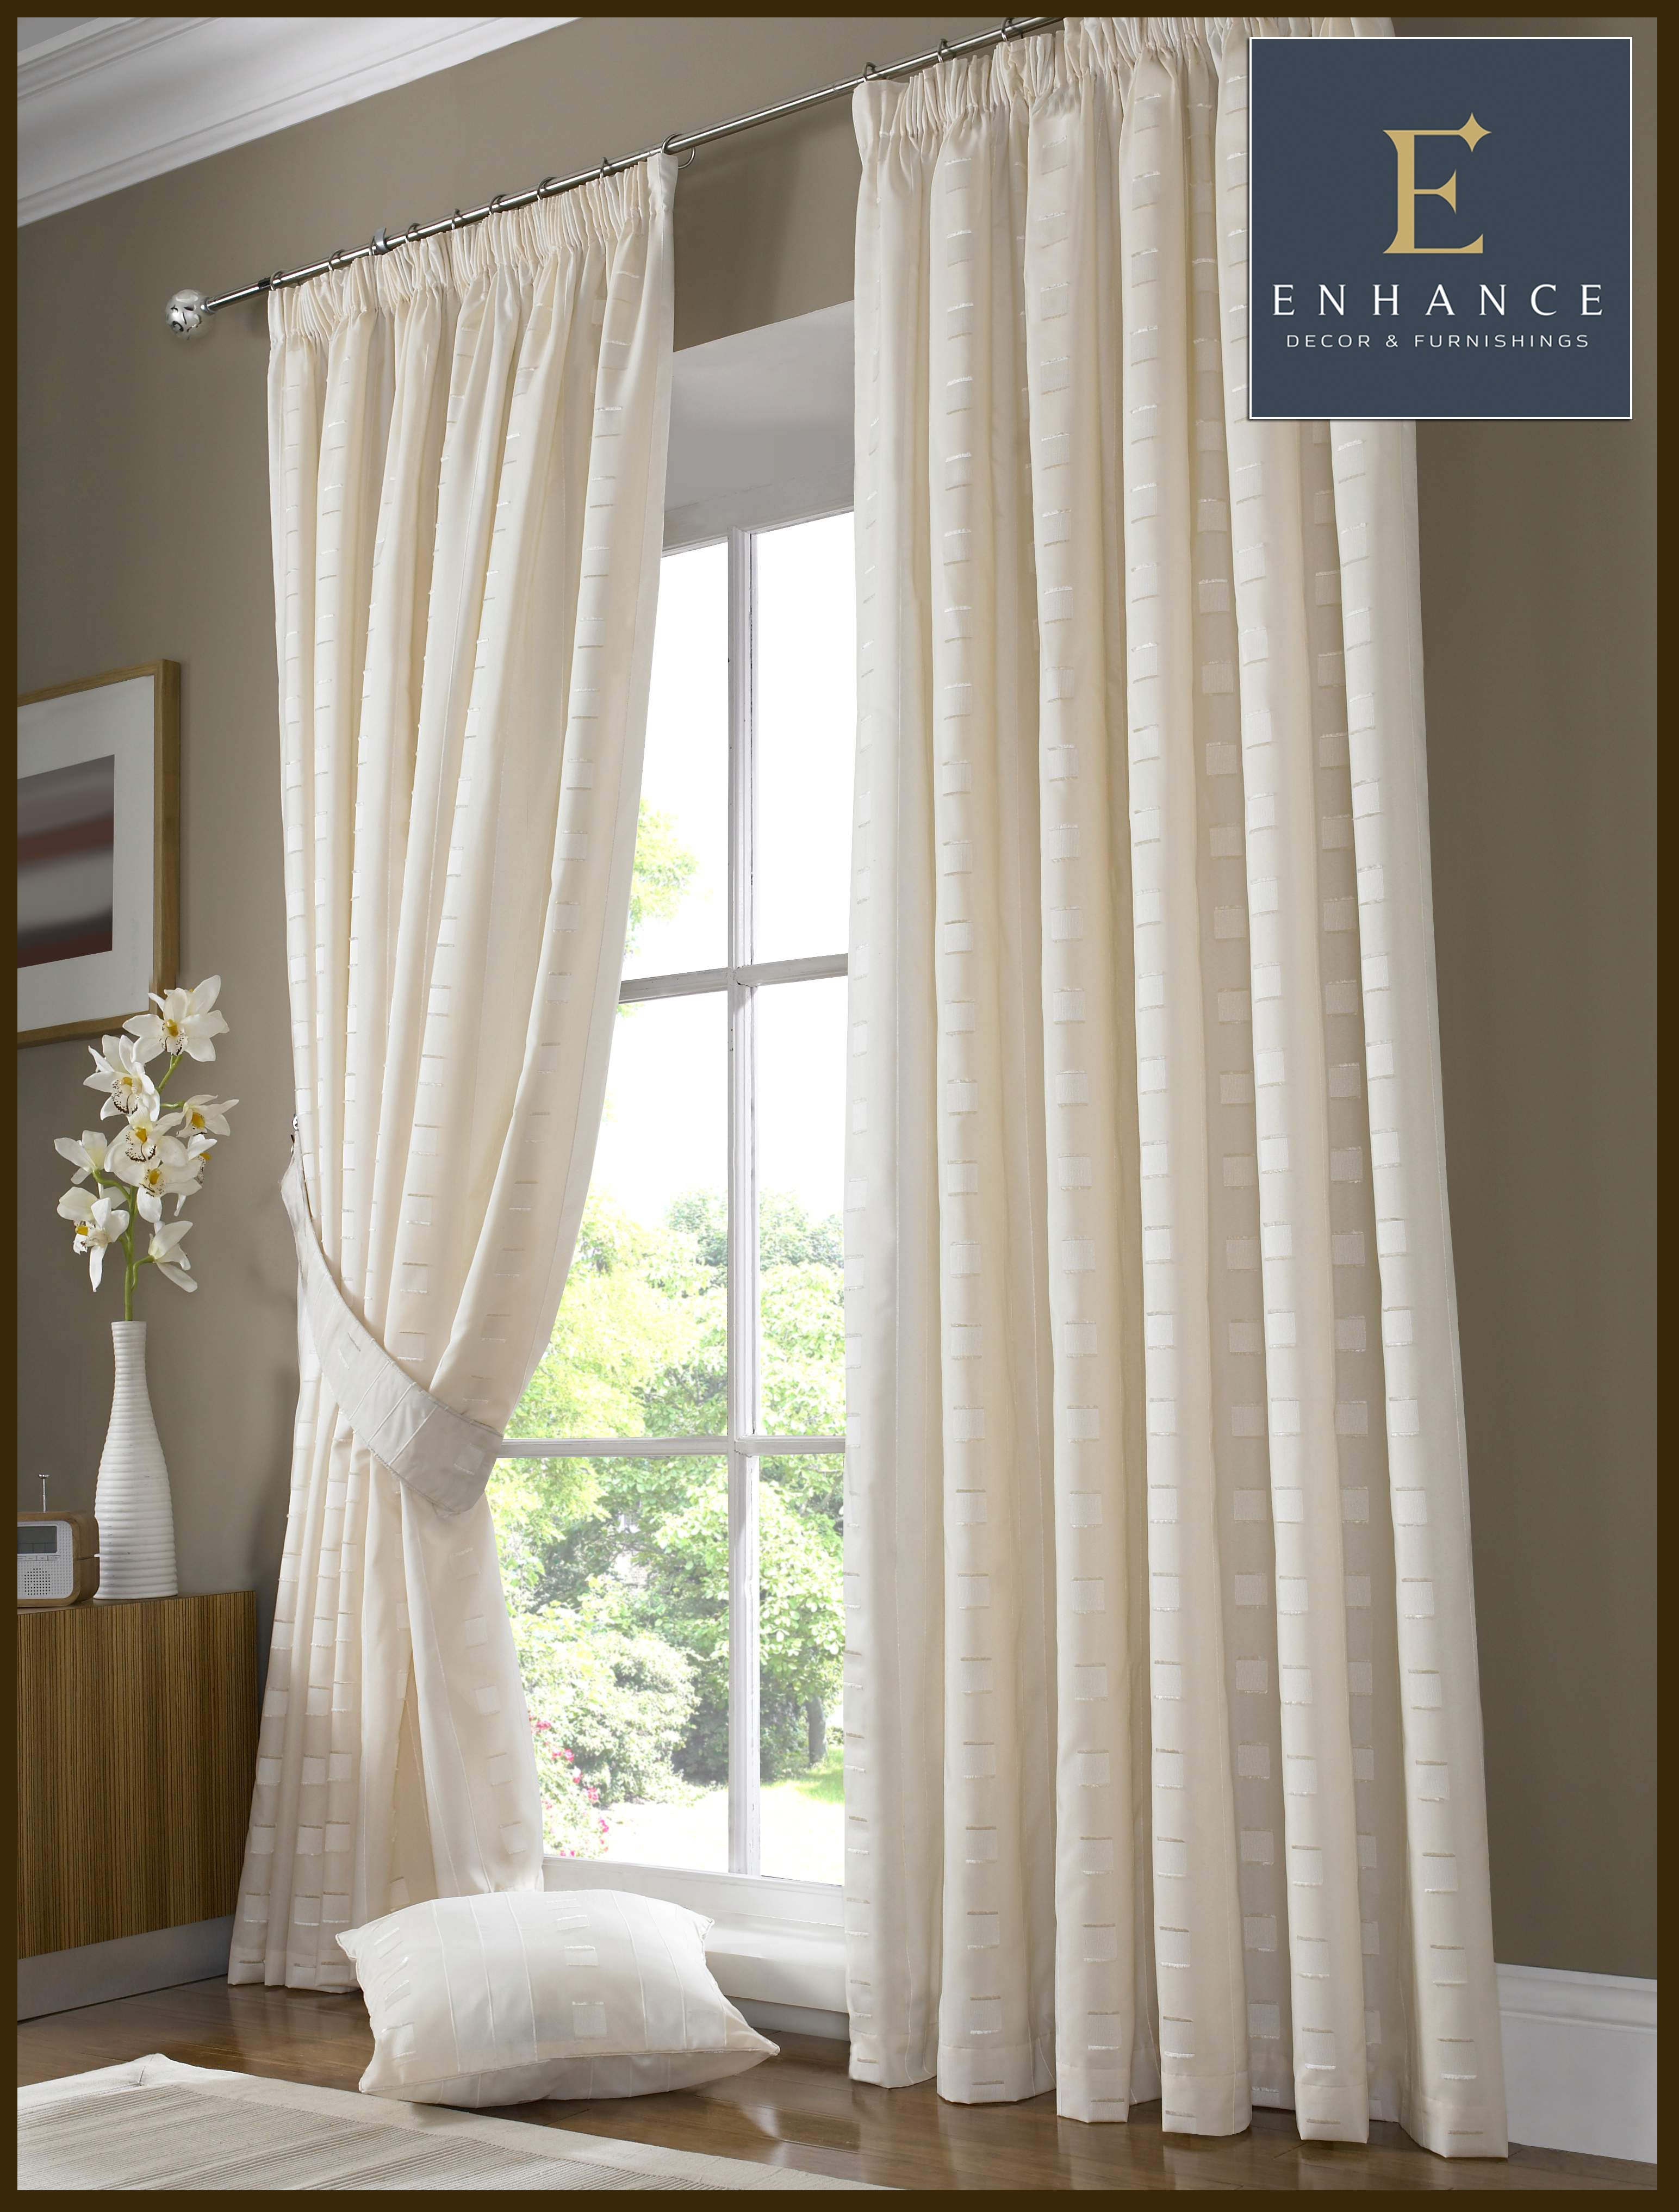 Where Can I Buy Cheap Curtains What Is The Right Place To Buy Ready Made Curtains Quora